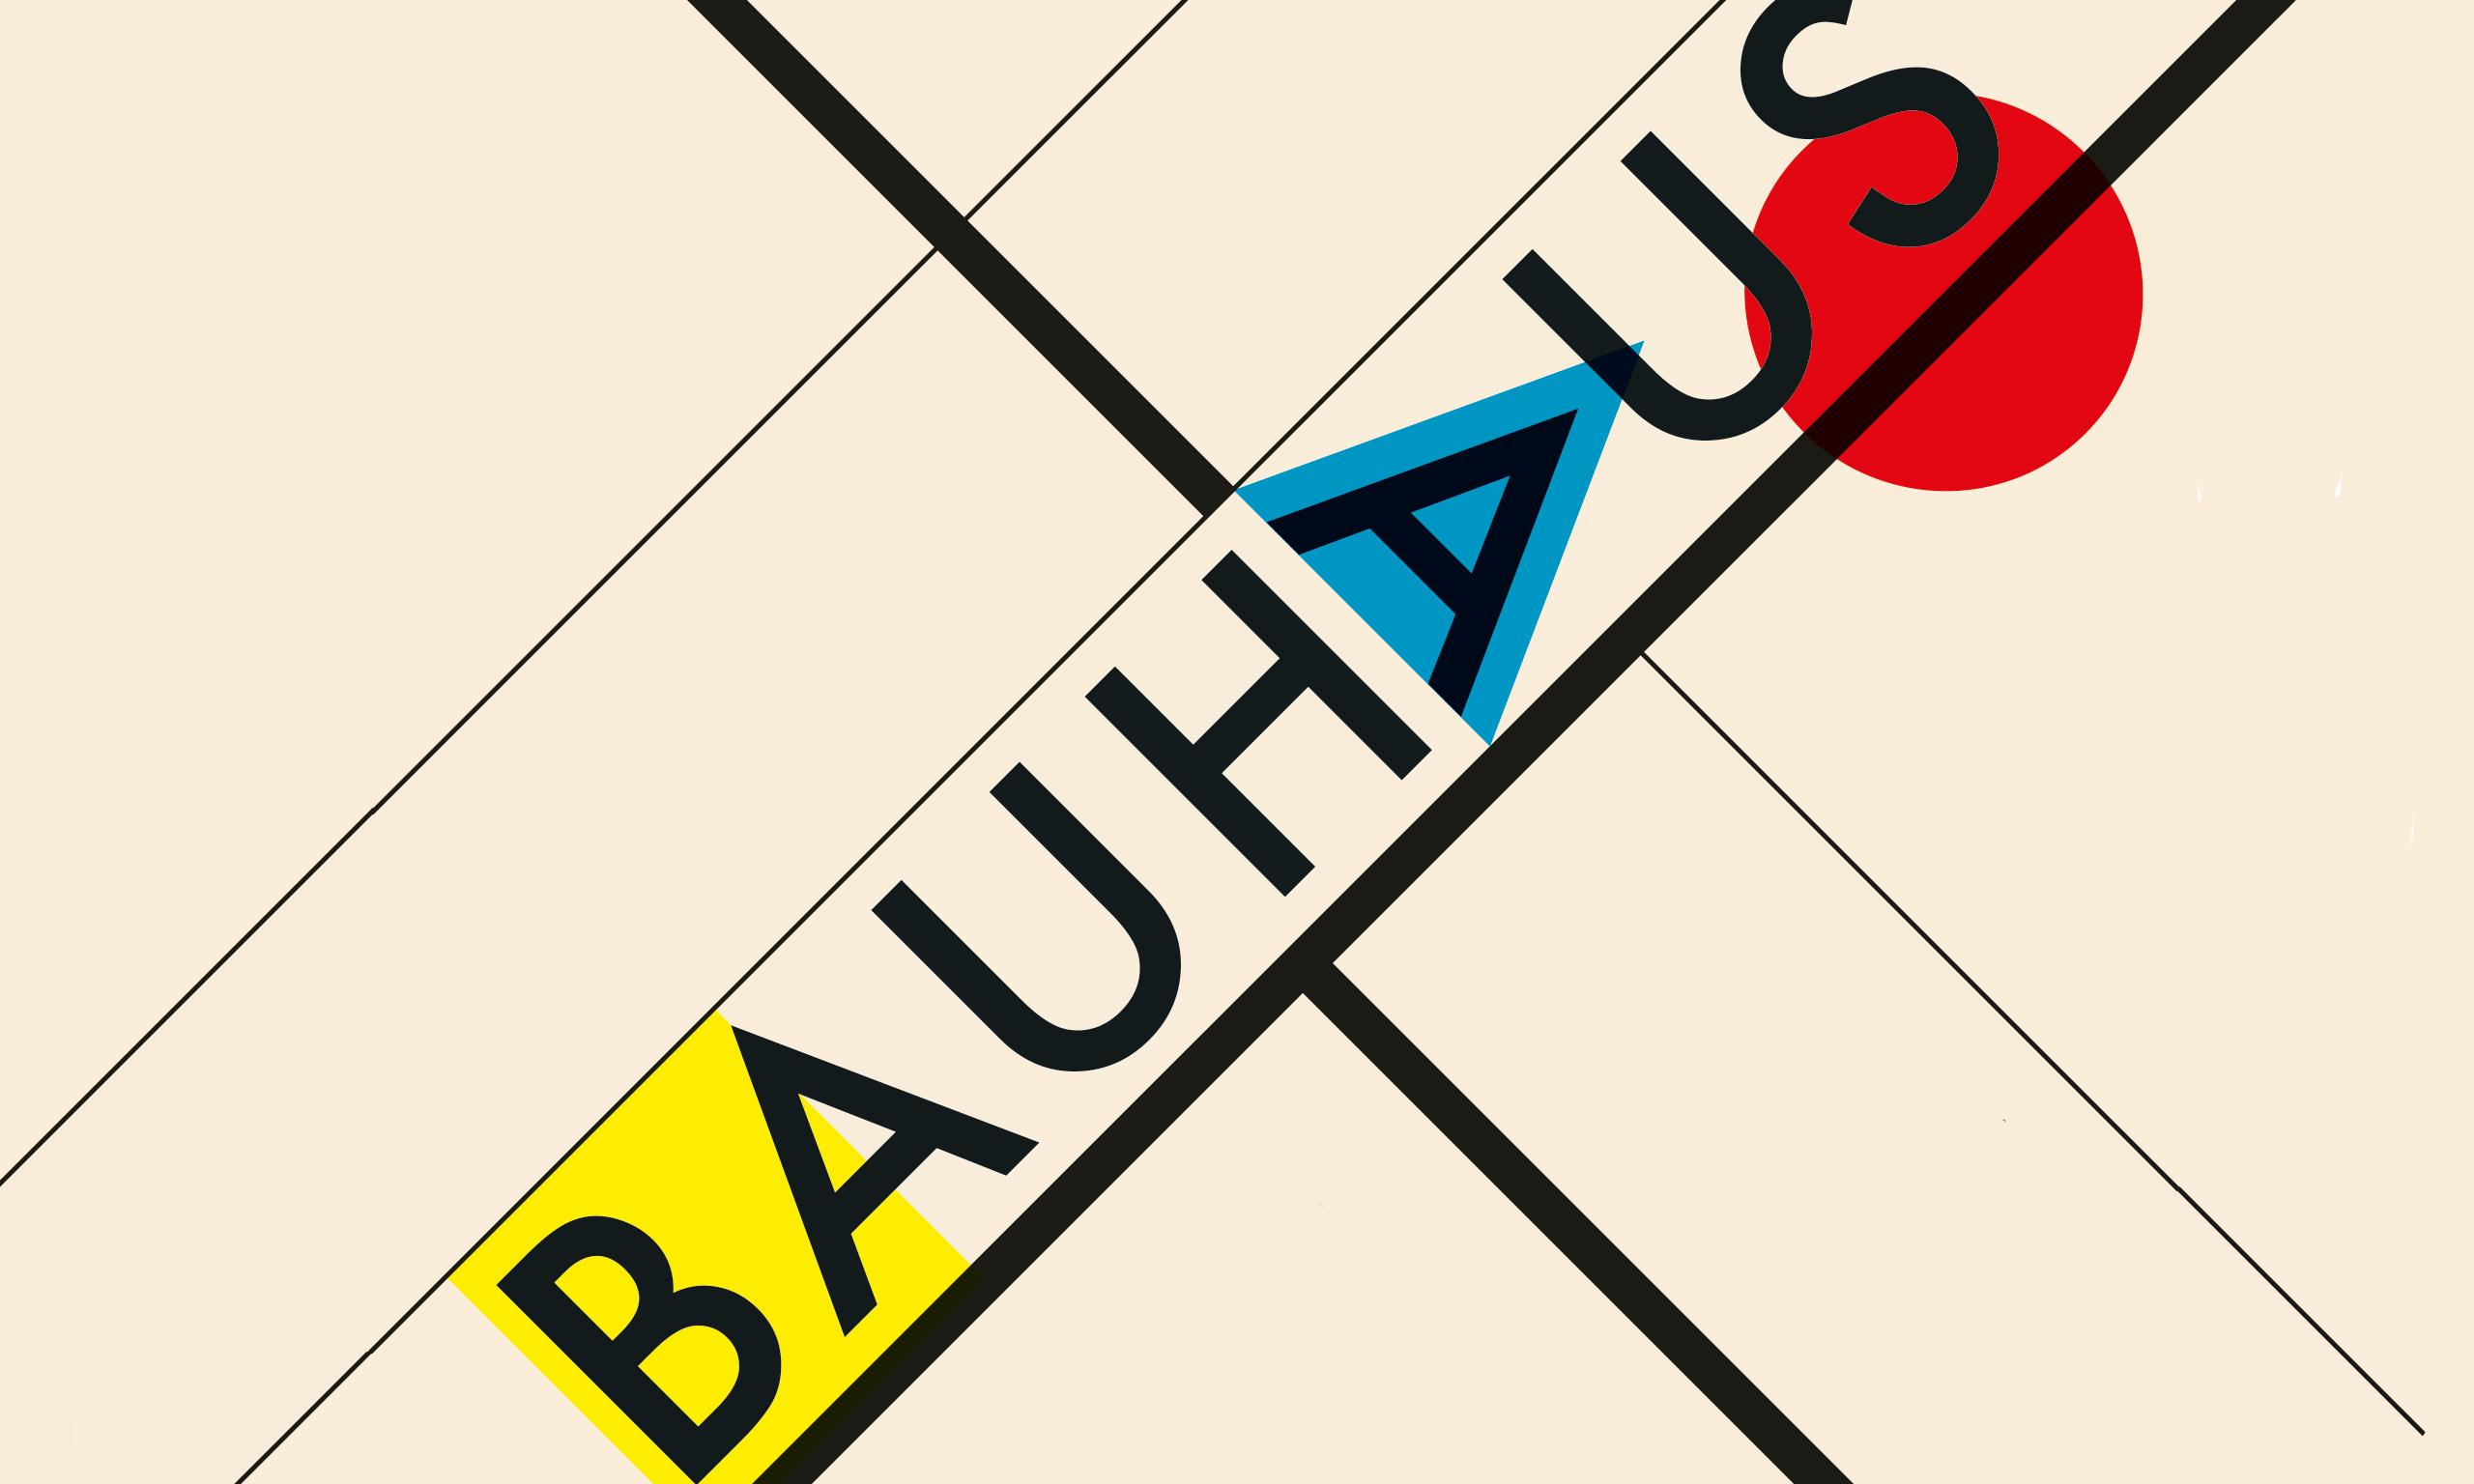 Bauhaus at 100: what it means to me by Norman Foster, Margaret Howell and others